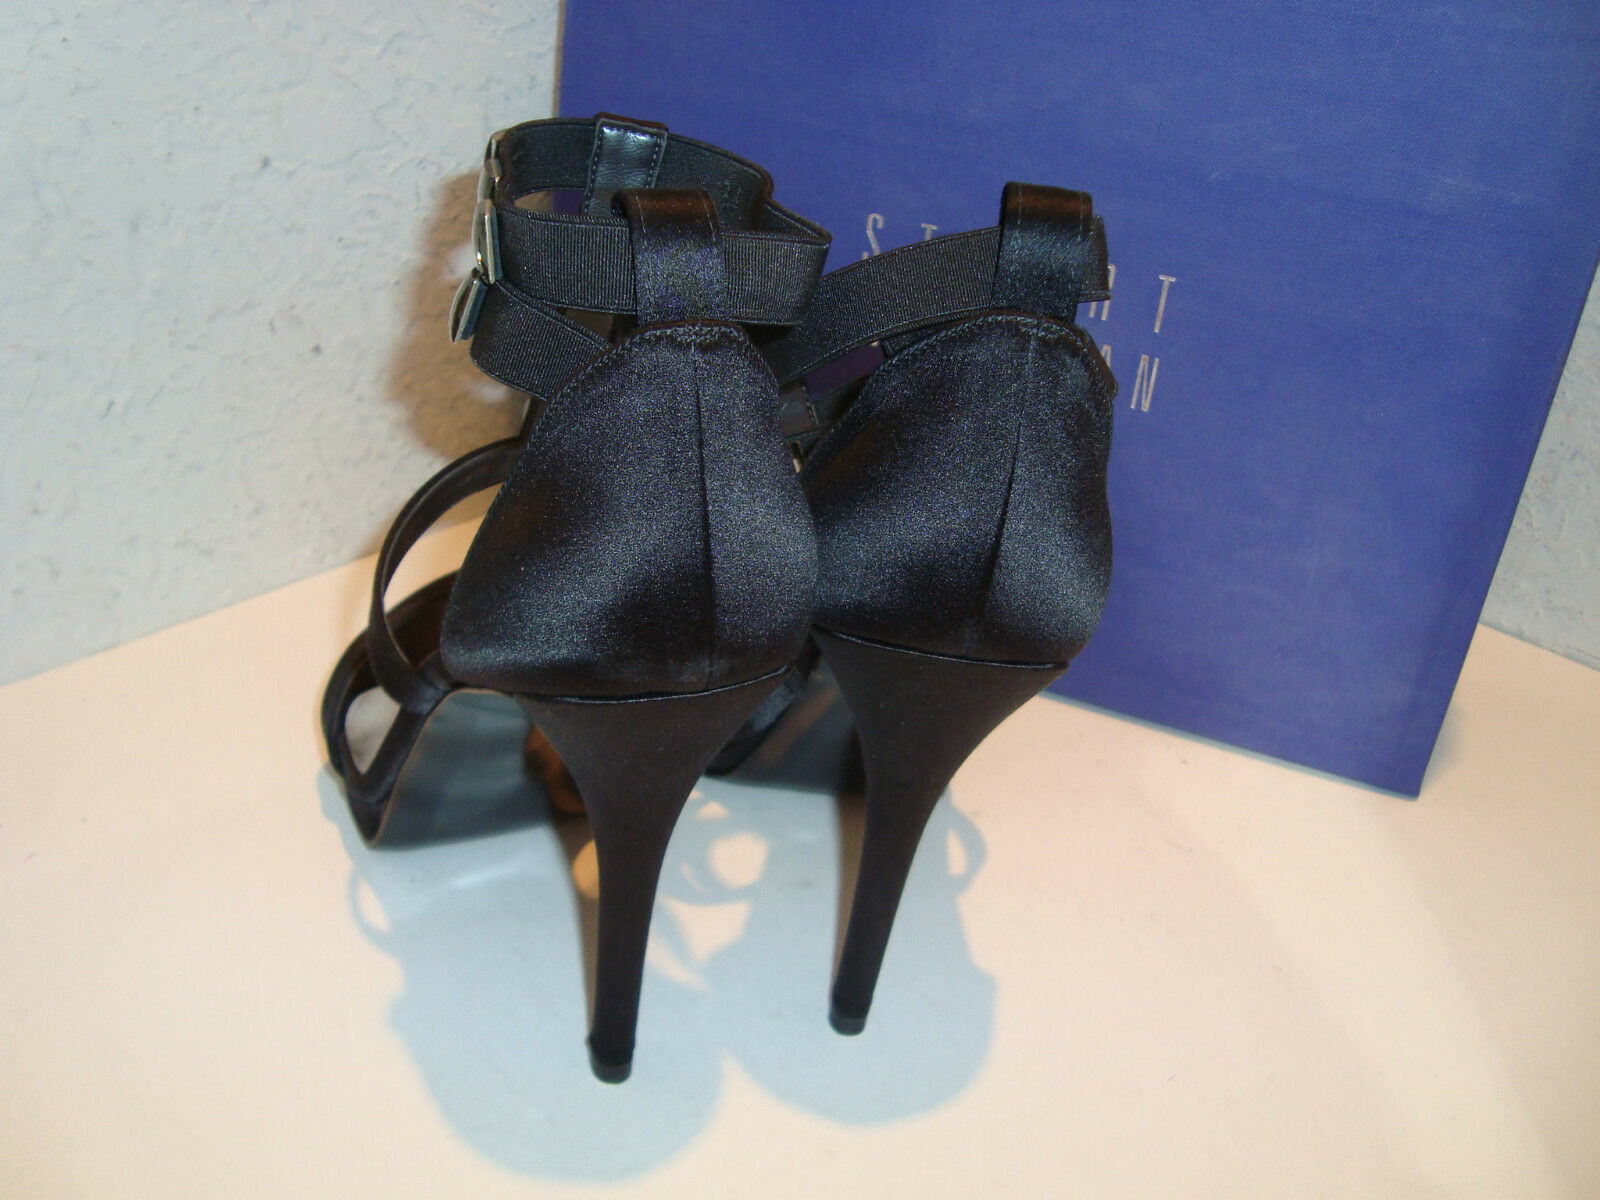 Stuart Weitzman New donna donna donna OnTheDot nero Satin Sandals scarpe 9 Medium 3eea3c